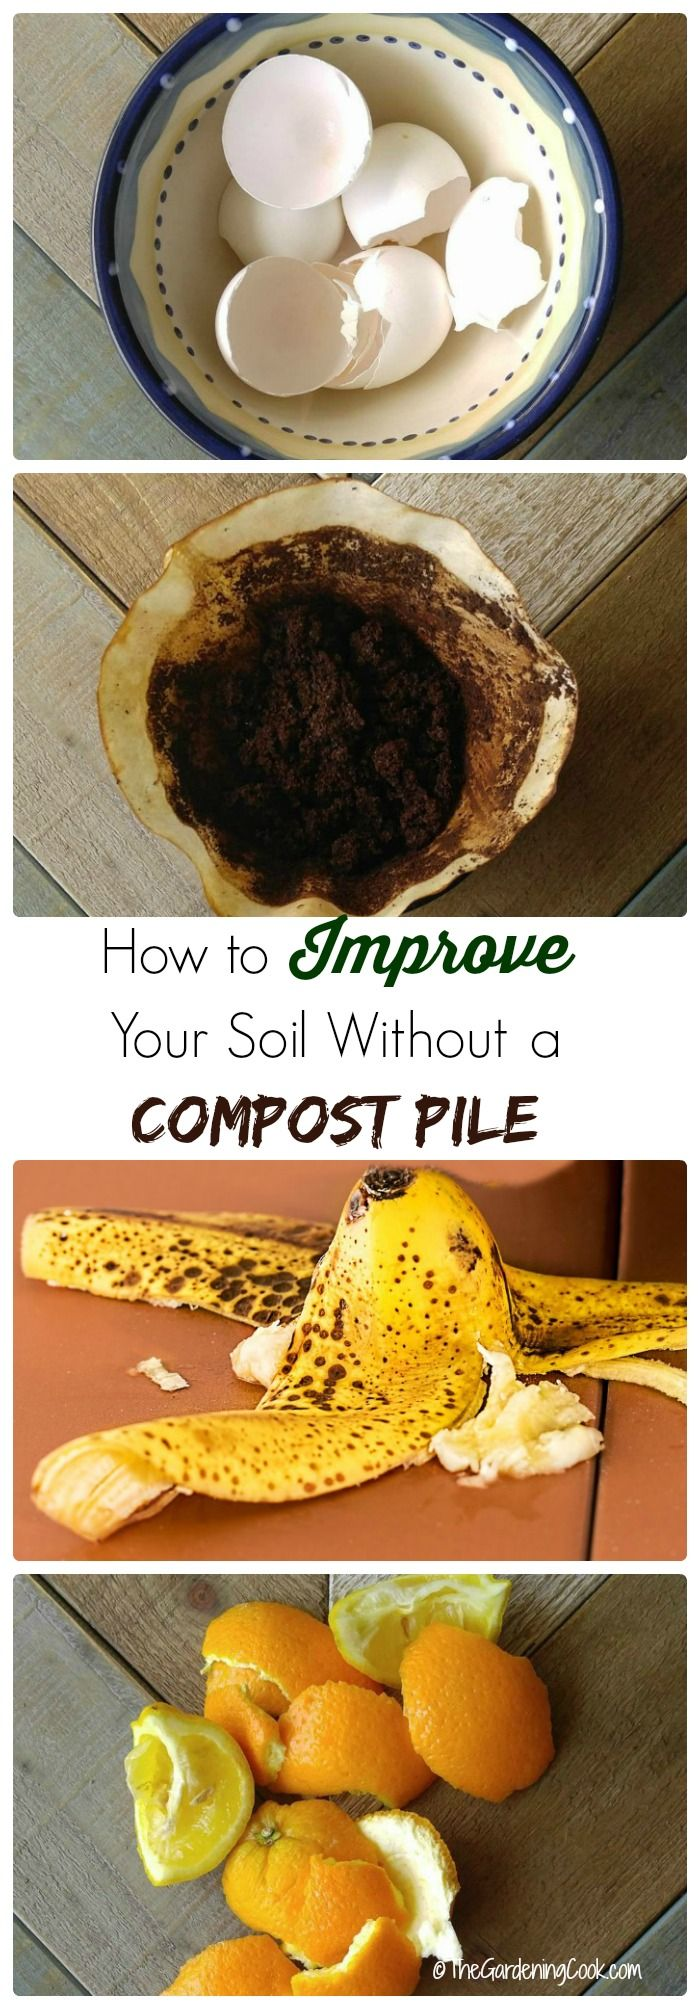 You do not need a compost pile to get great garden soil. Trench composting with kitchen scraps is an easy to use technique that all small gardeners can use. thegardeningcook.com